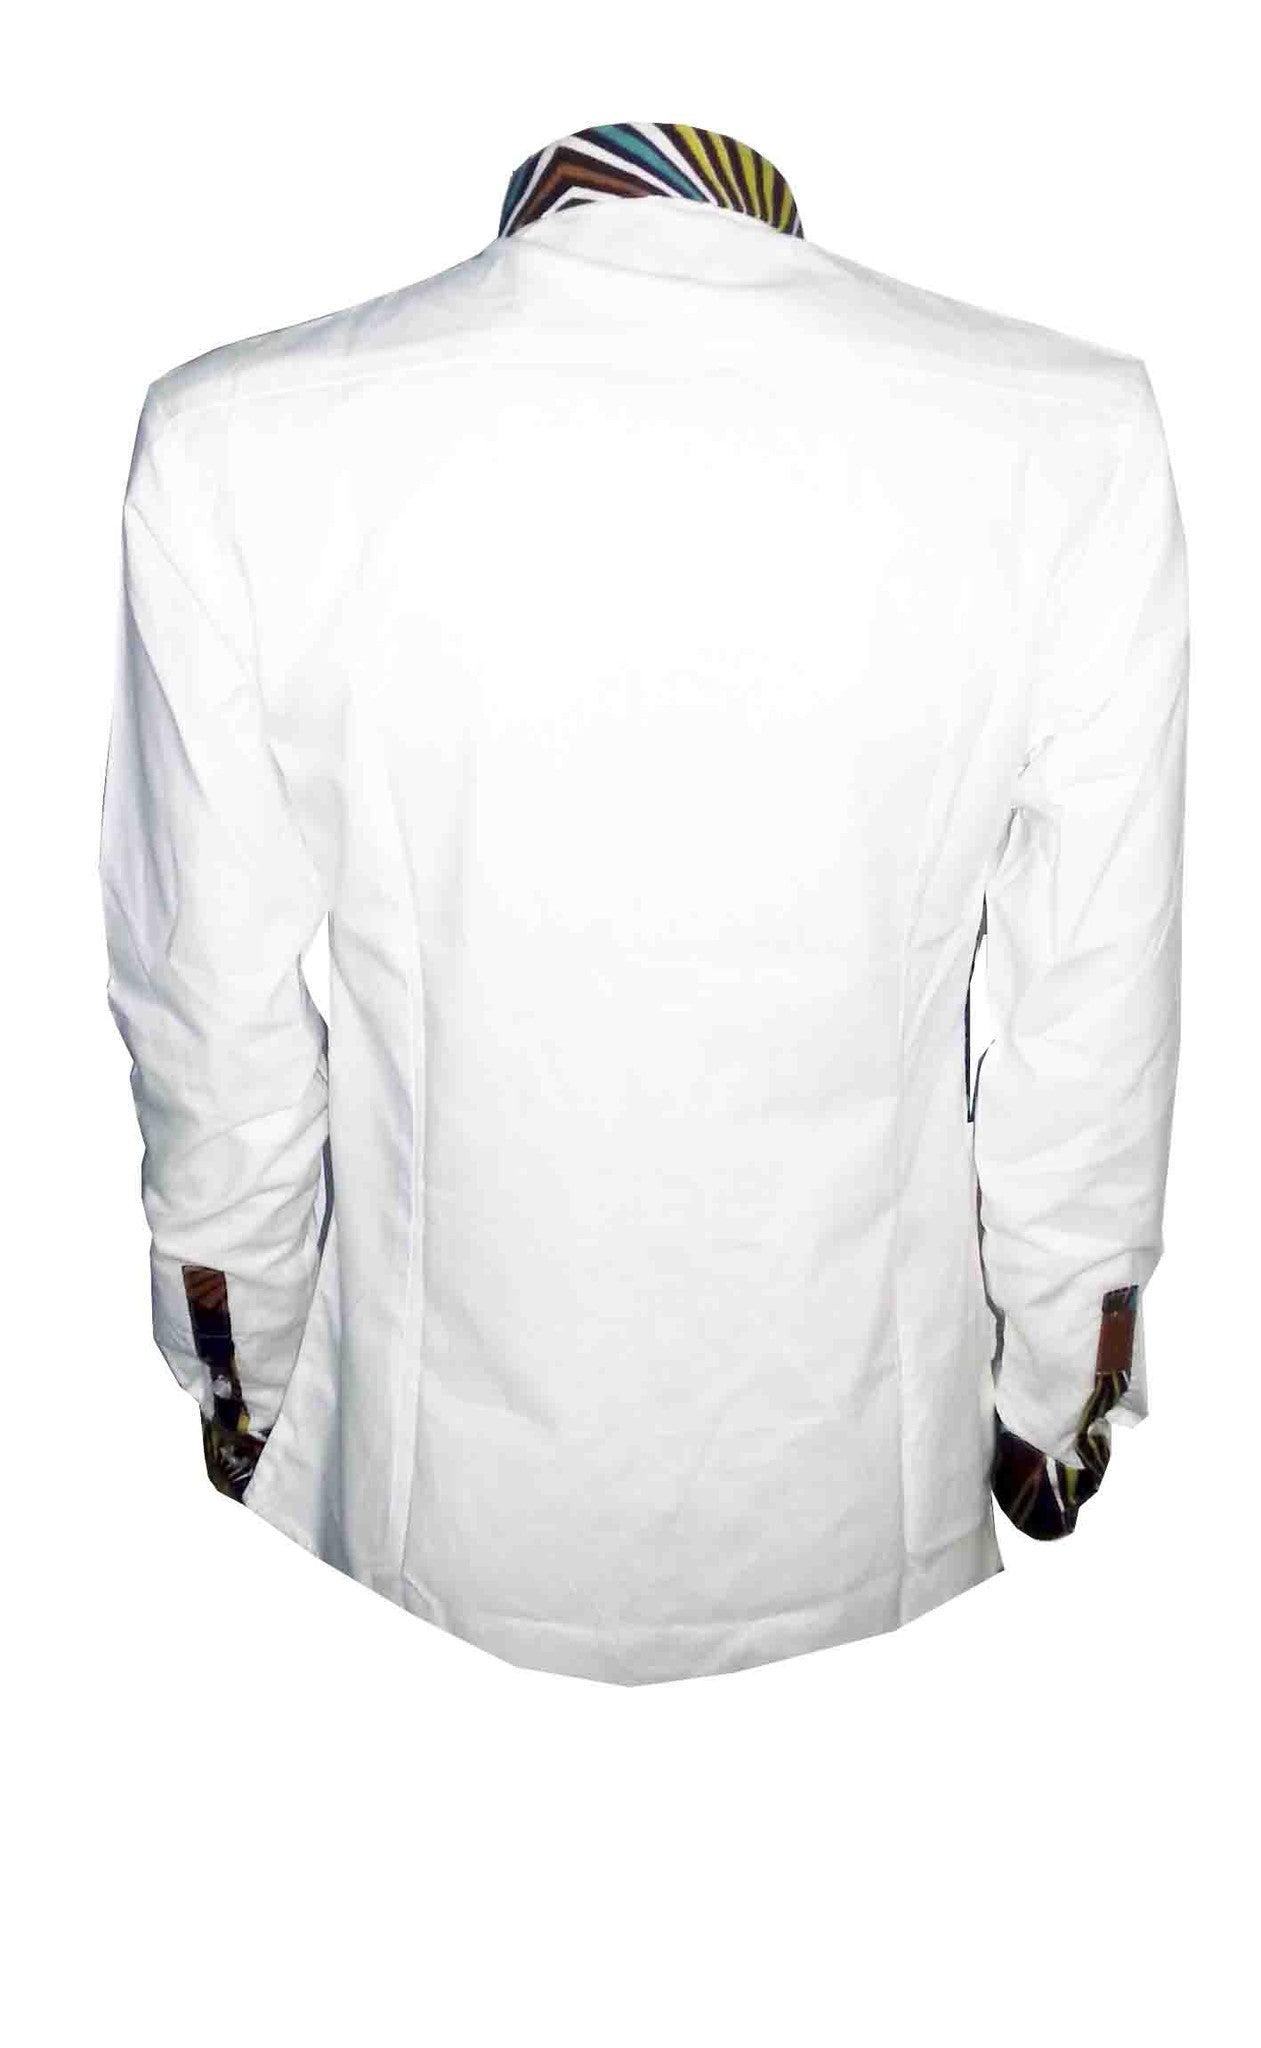 Men's African print shirt-White colour block - OHEMA OHENE AFRICAN INSPIRED FASHION  - 2